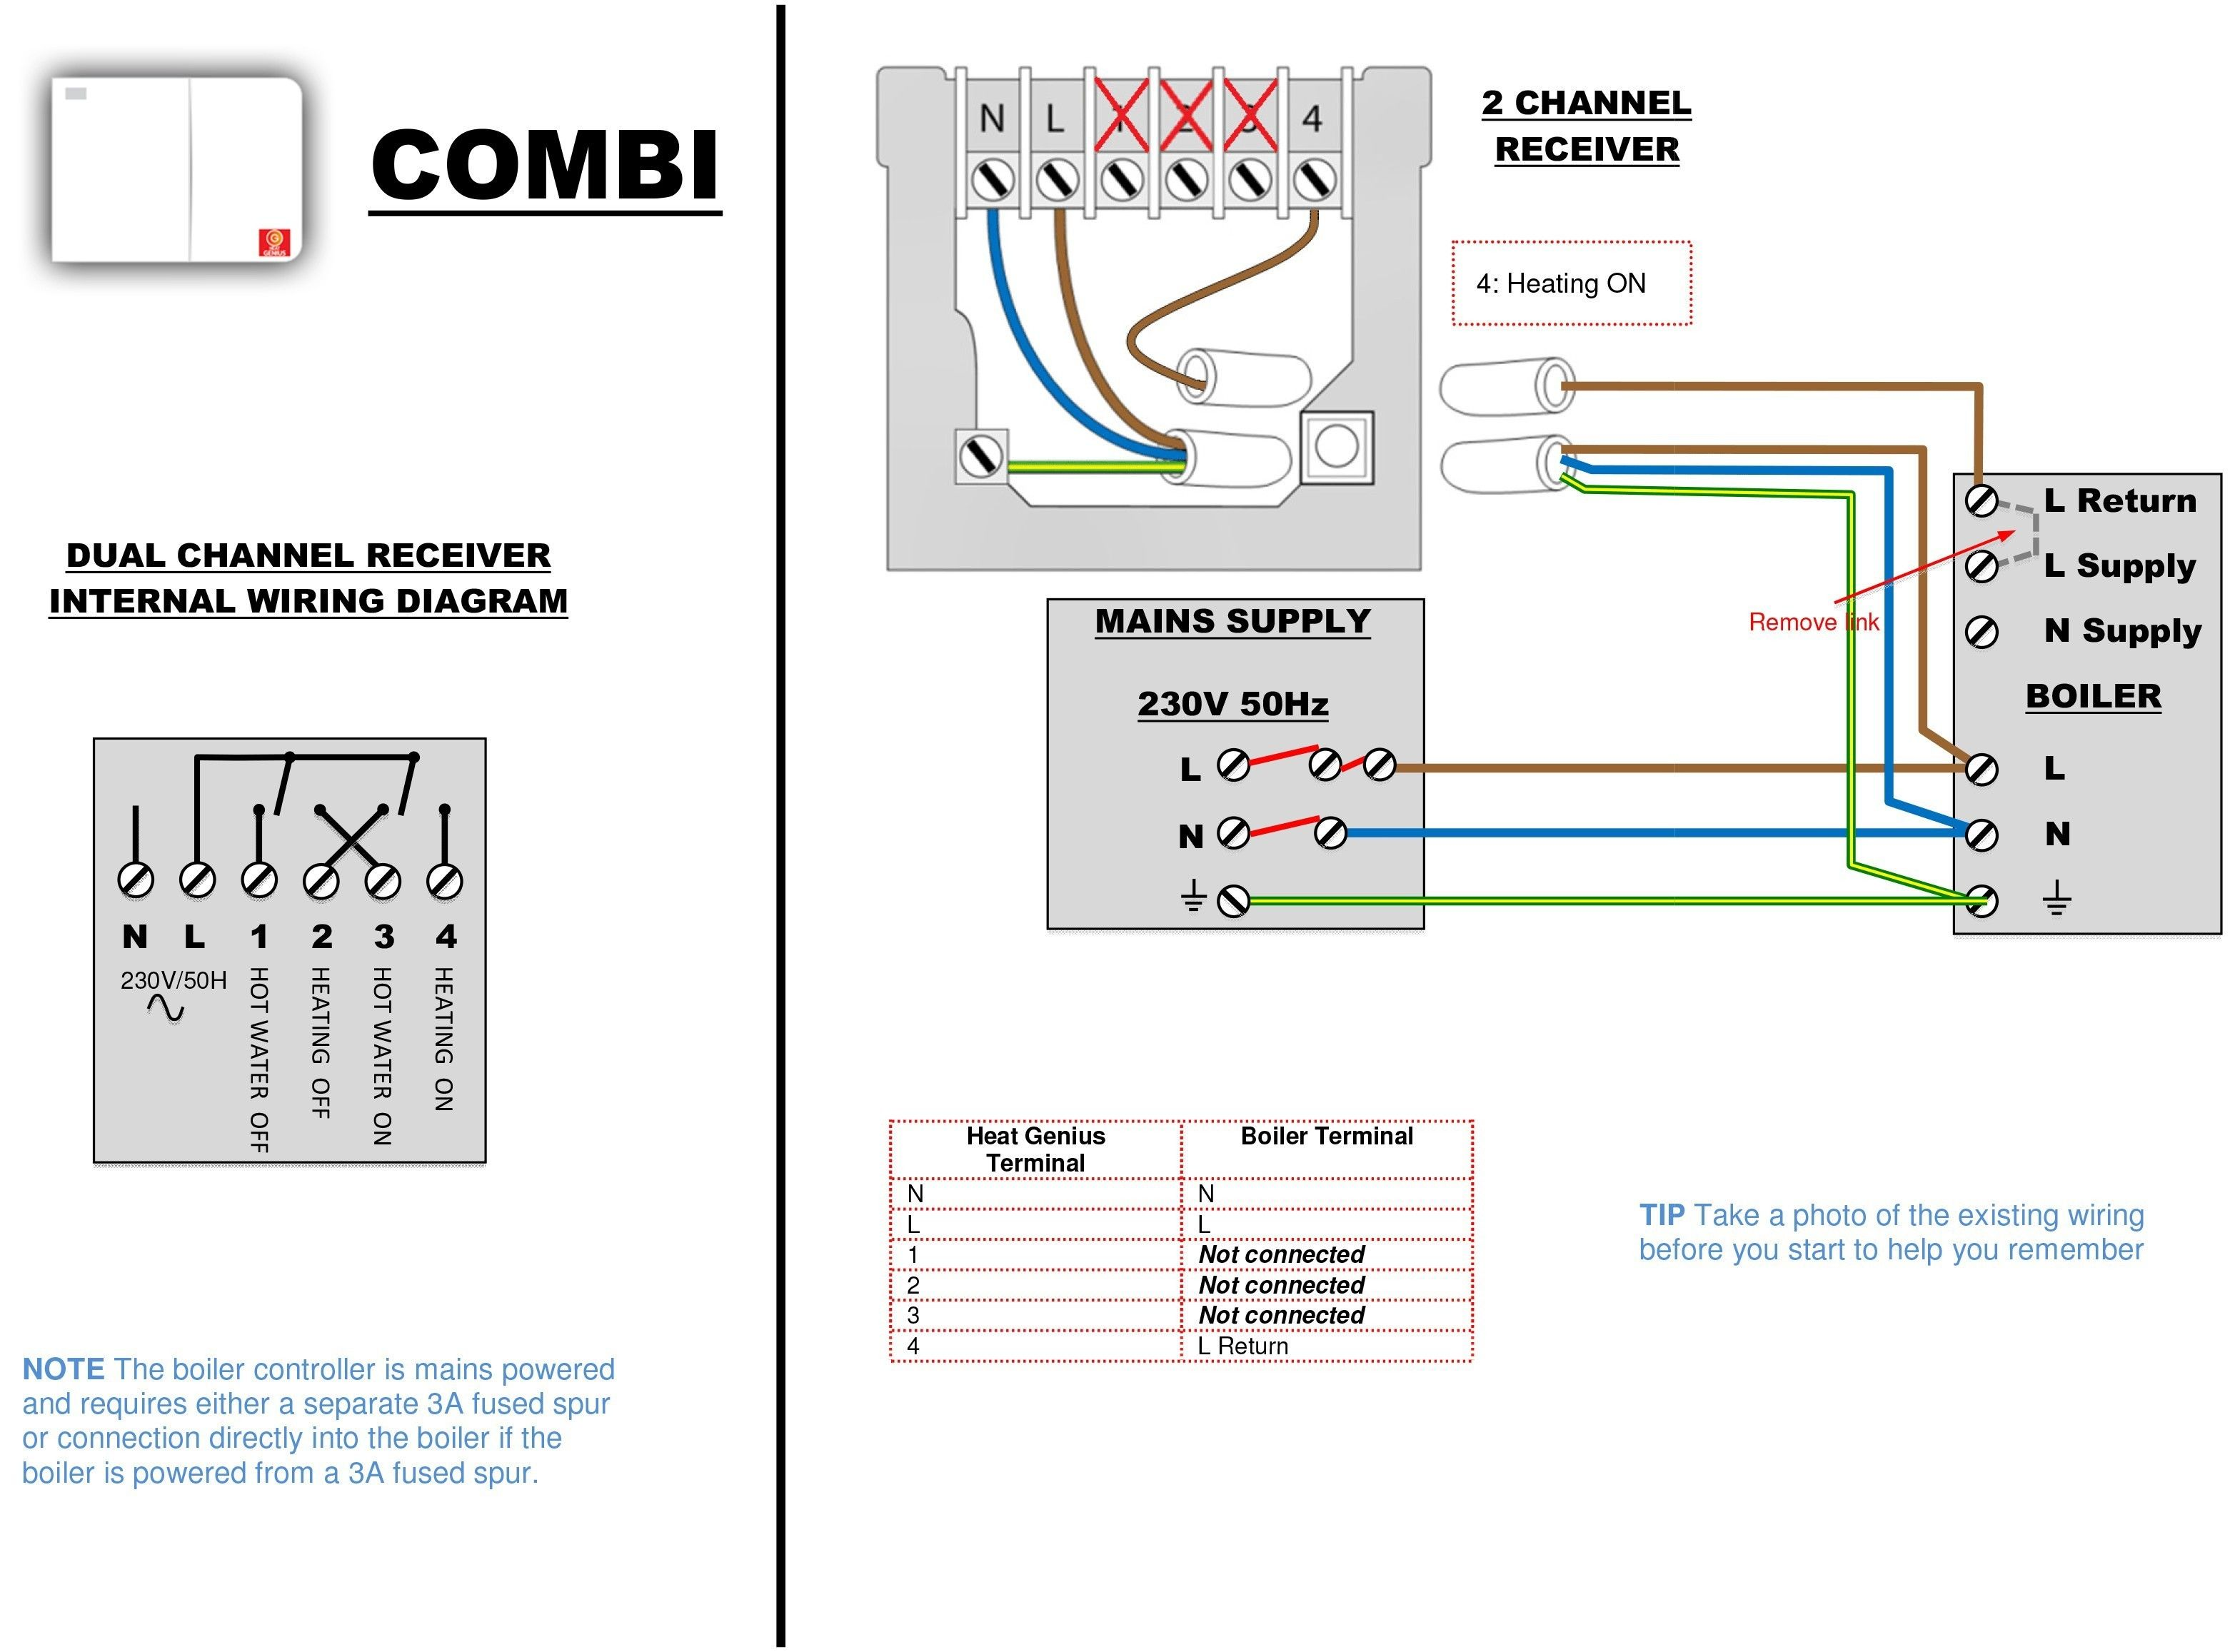 New Wiring Diagram For Combination Boiler Combi